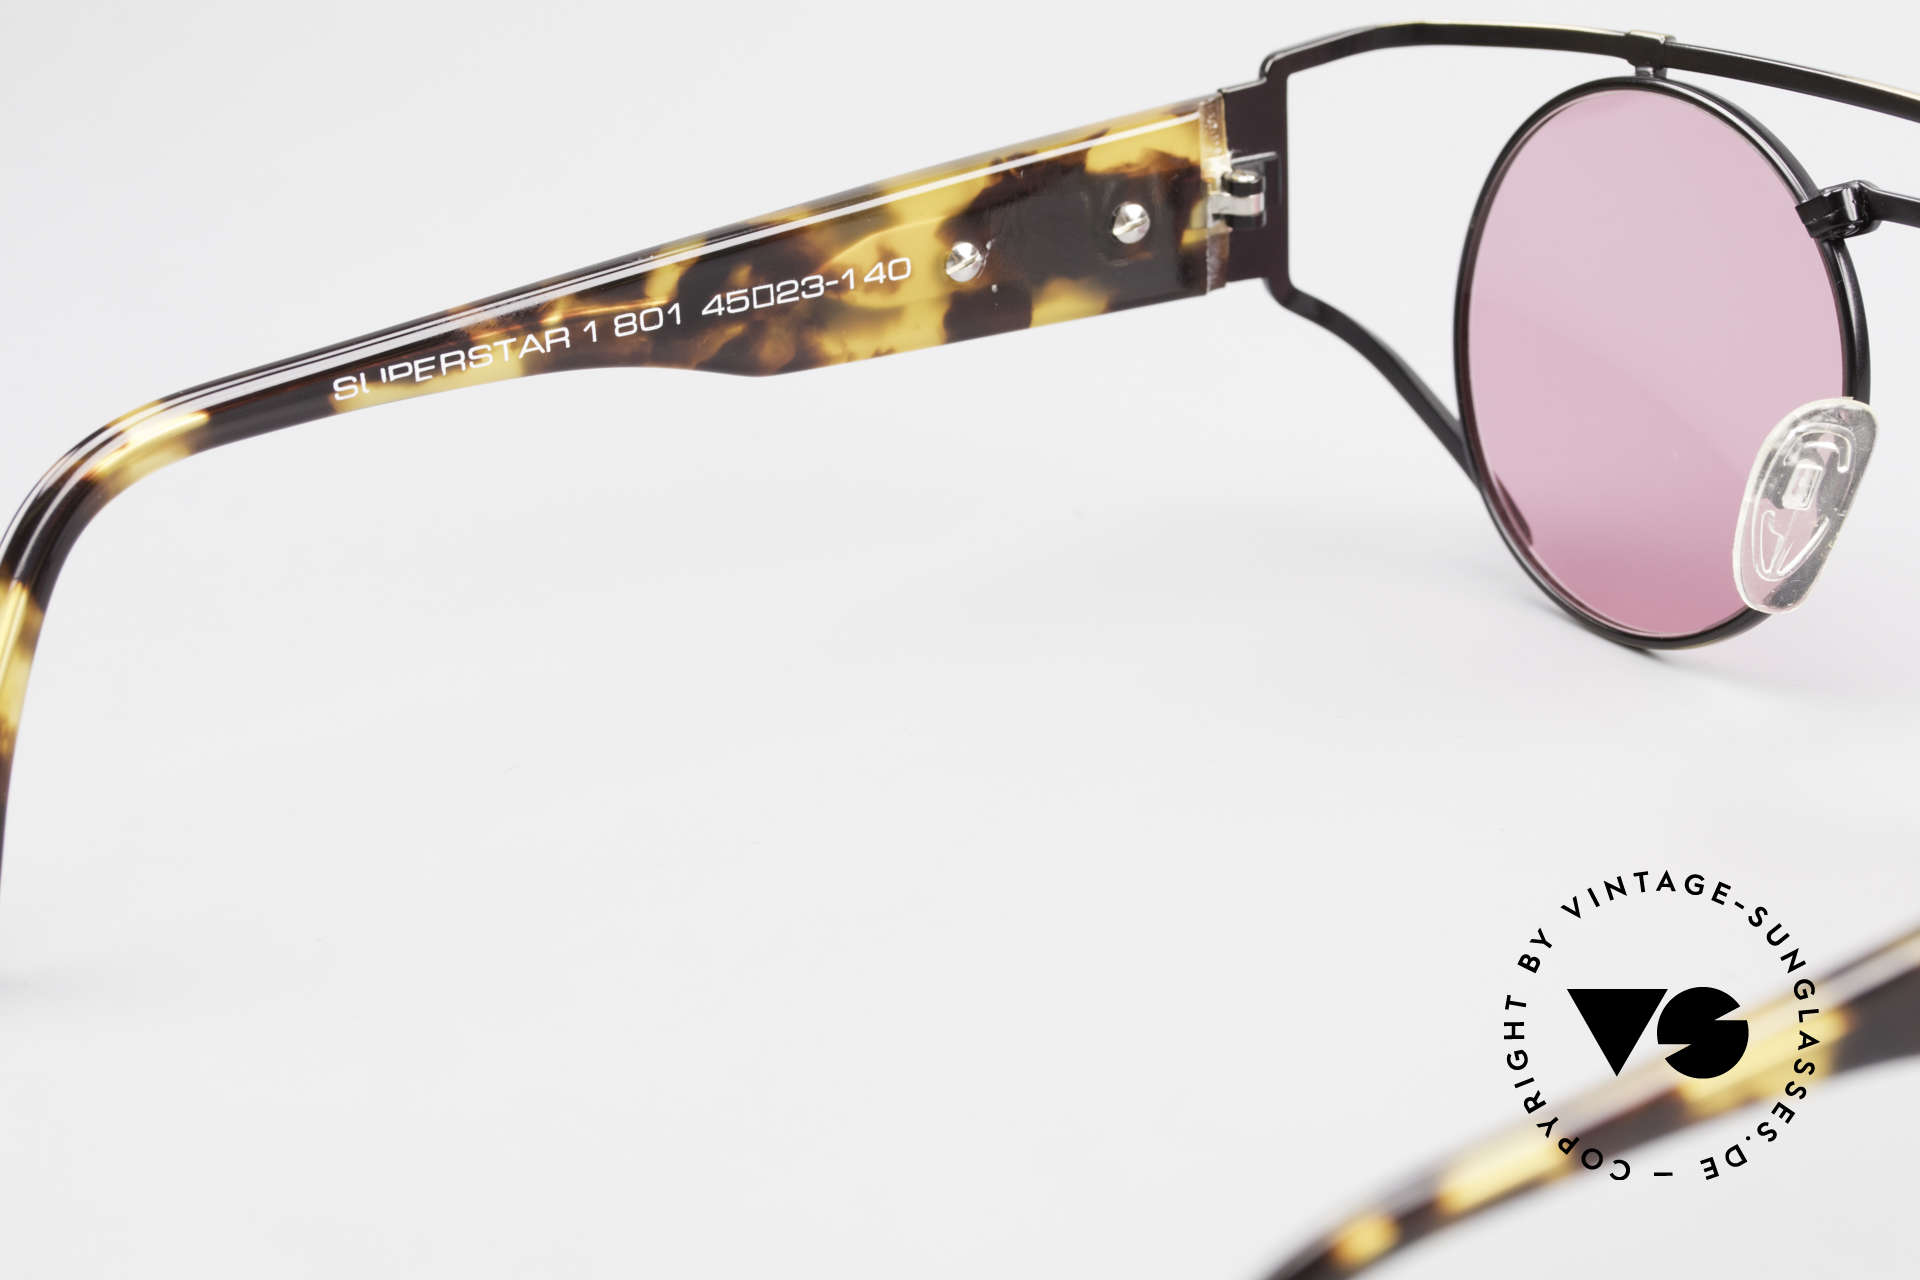 Neostyle Superstar 1 Steampunk Sunglasses Pink, an old ORIGINAL with new fancy pink sun lenses, Made for Men and Women